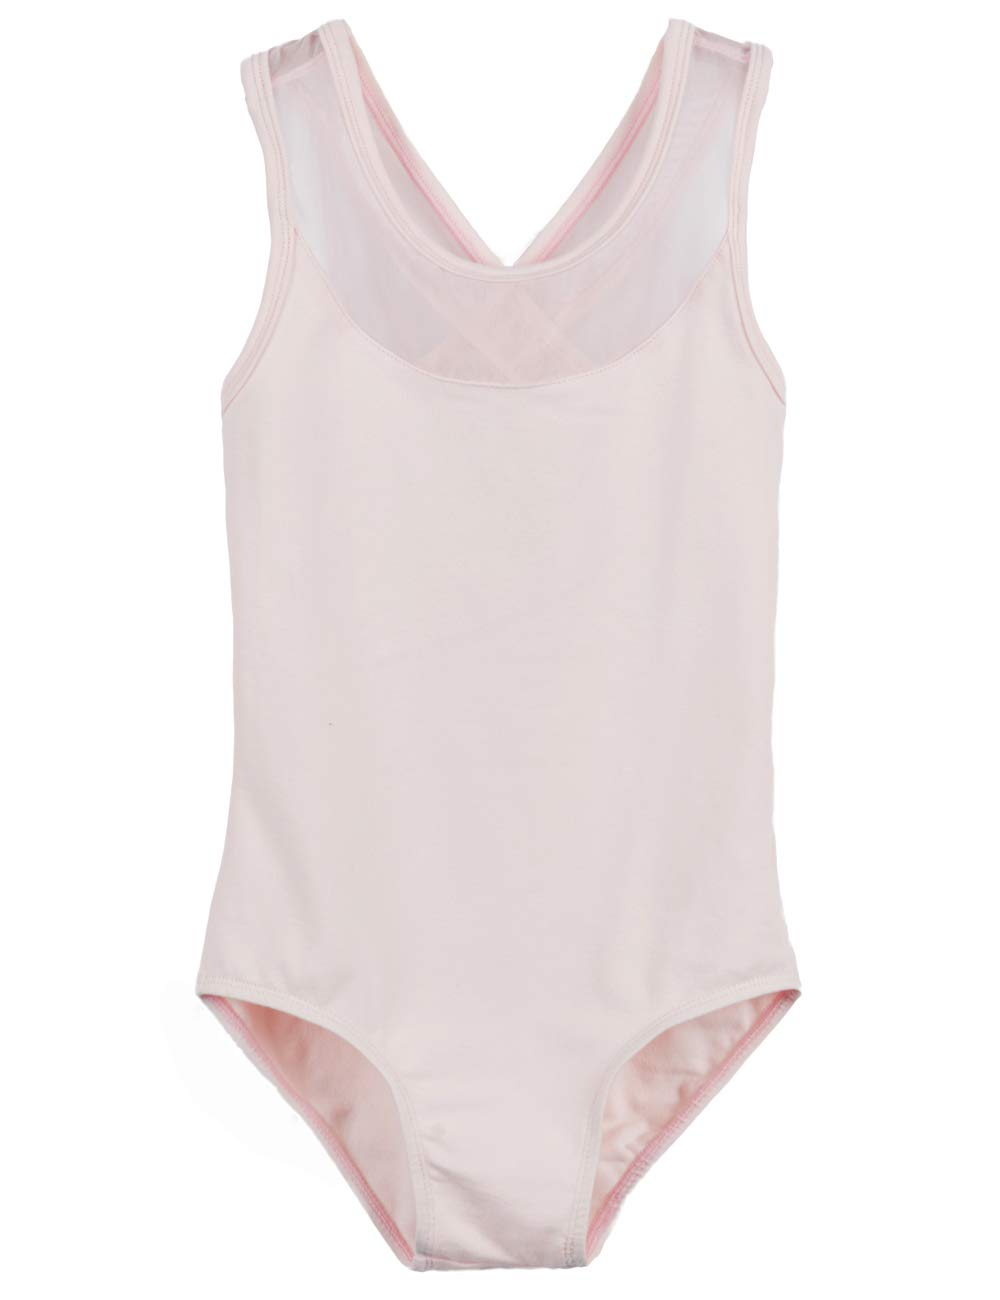 MdnMd Dancewear Leotard for Girls with Mesh Cross Back (Ballet Pink, Age 10-12,Height 55-59'') by MdnMd